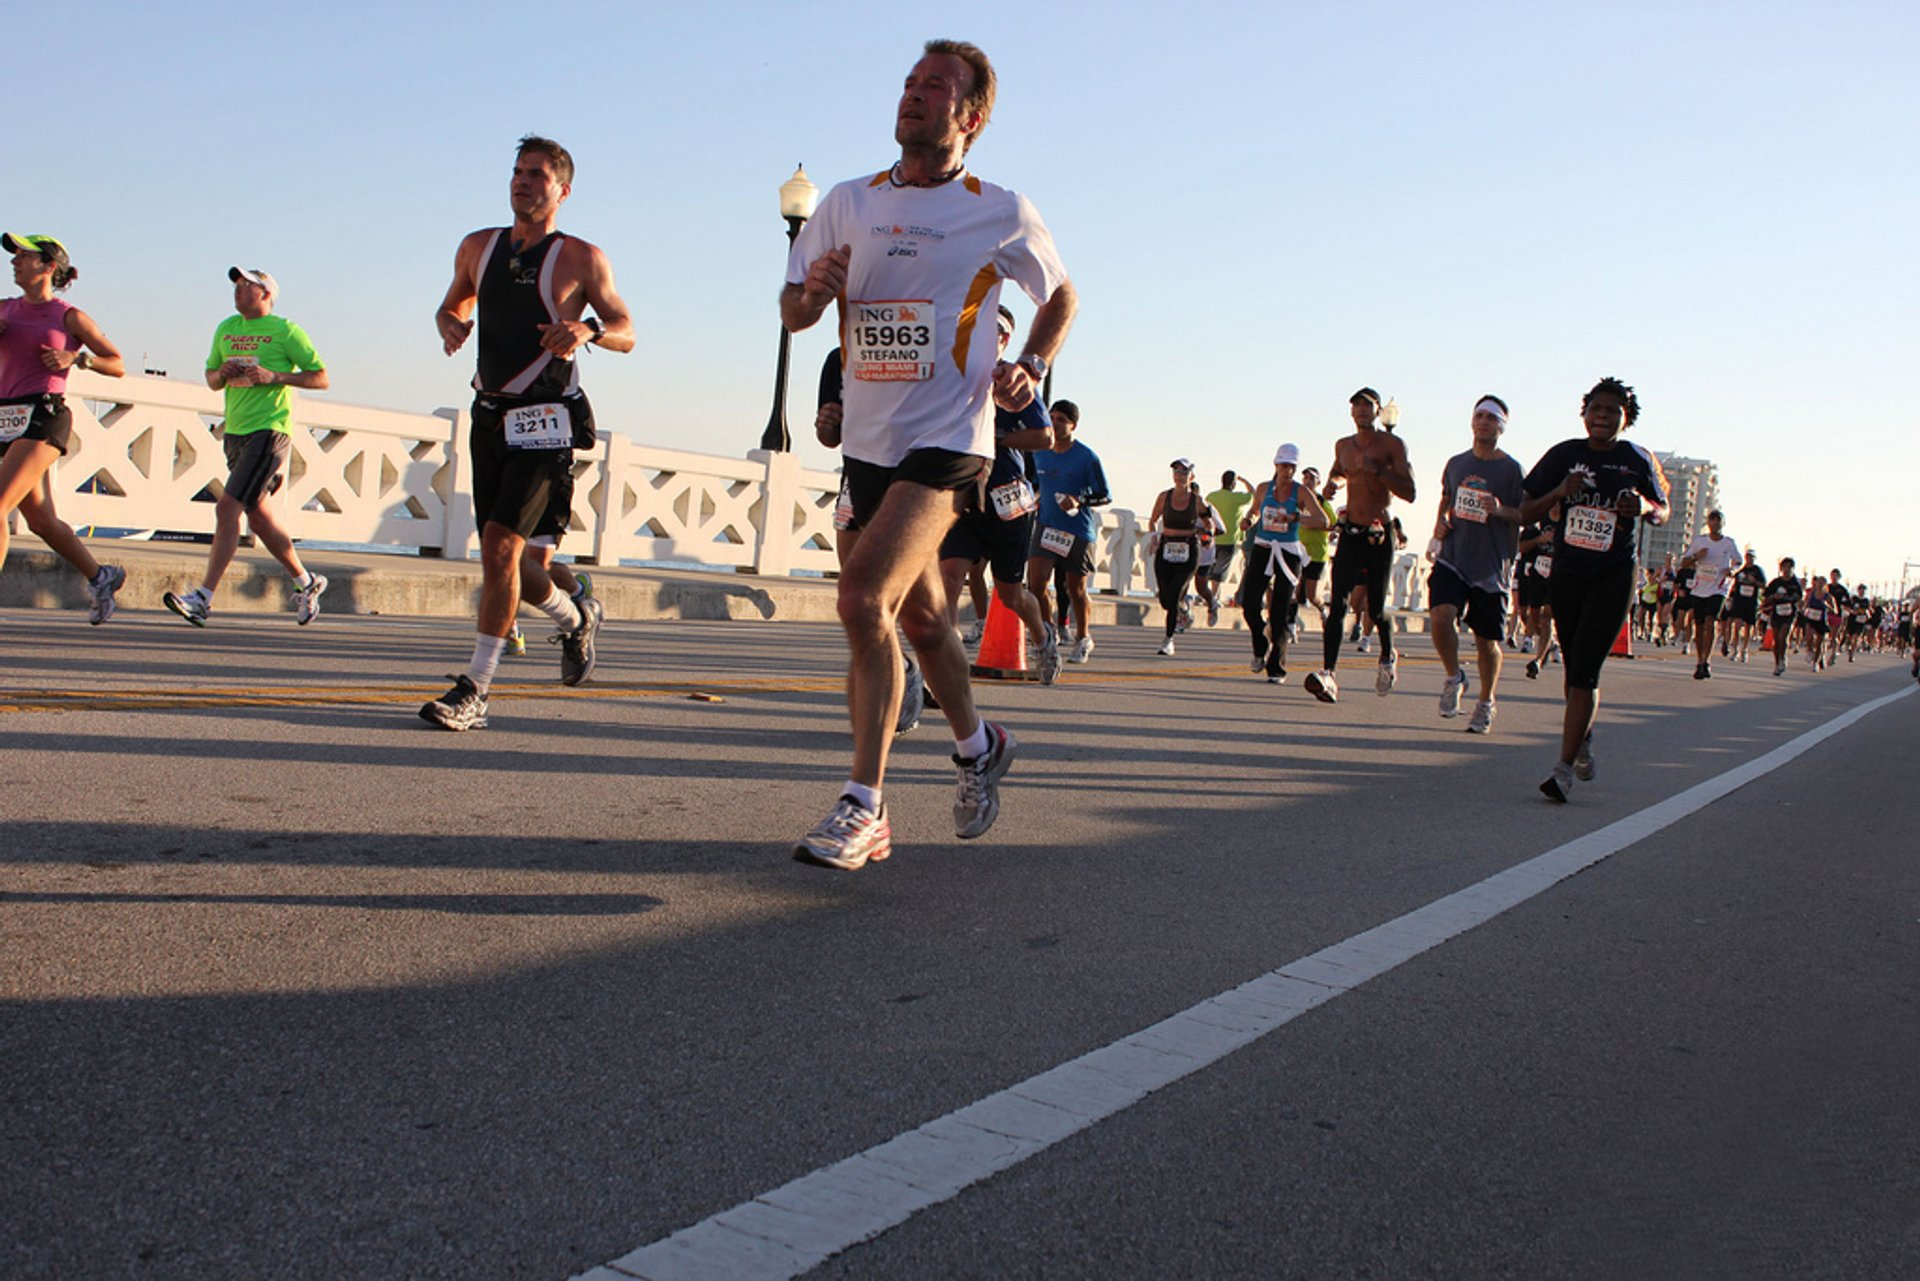 Miami Marathon in Miami 2019 - Best Time